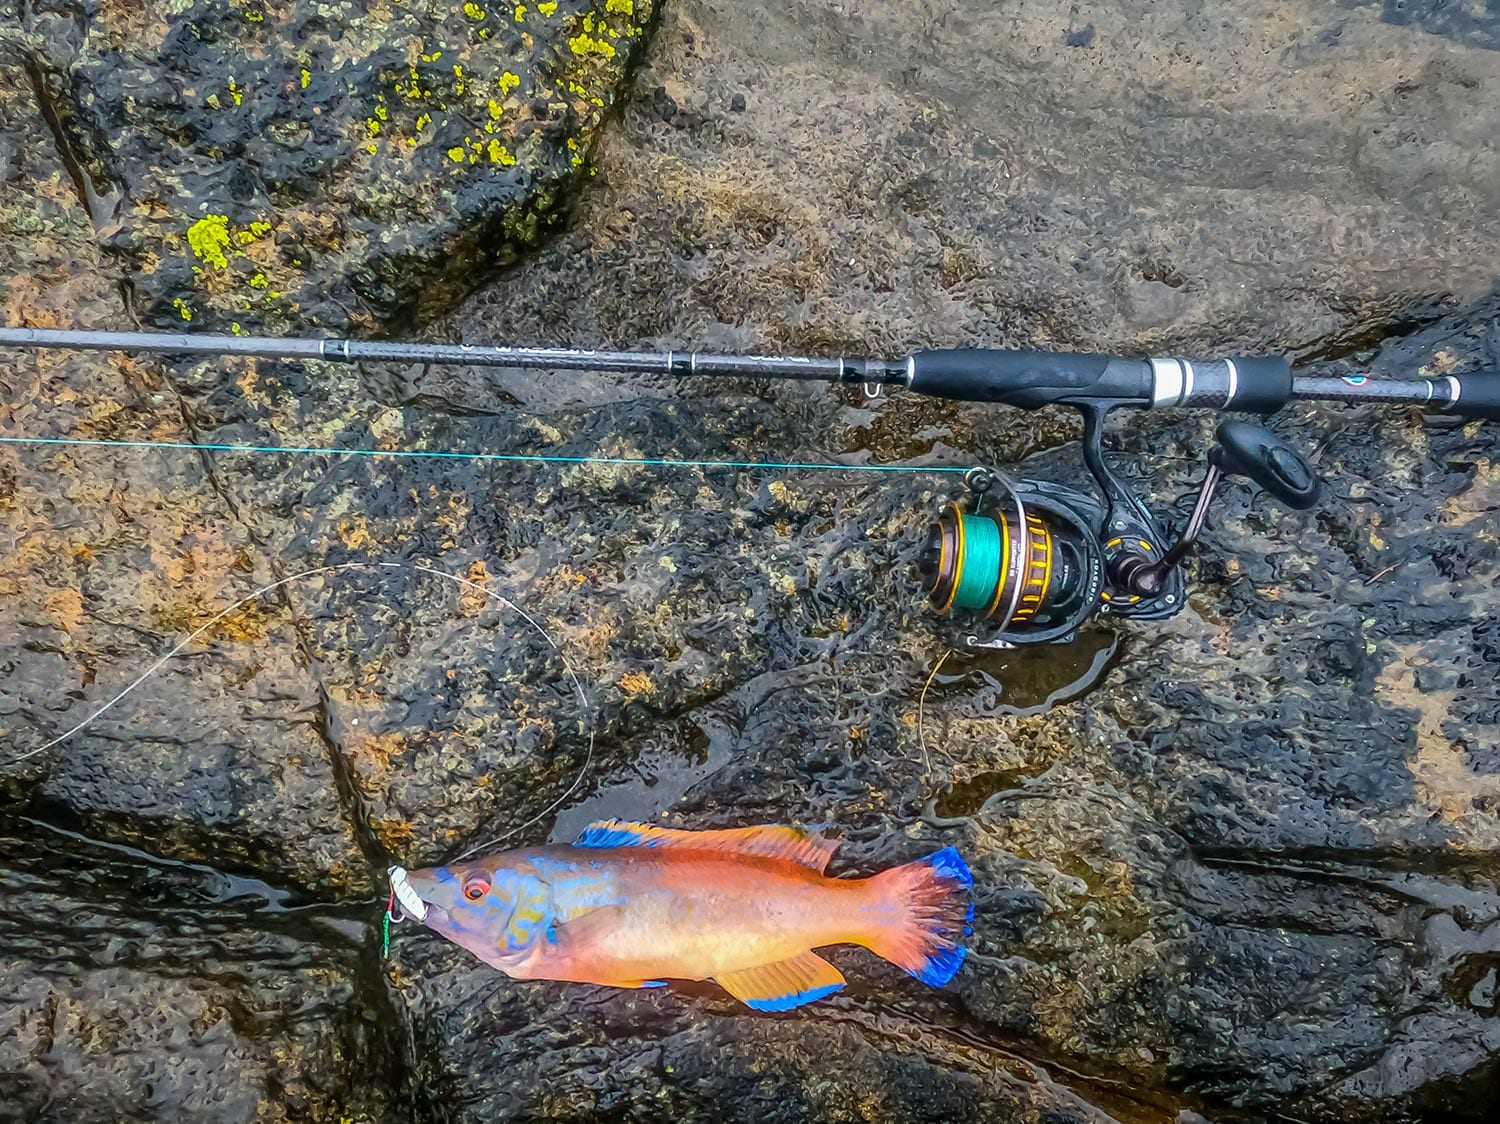 a male cuckoo wrasse from scotland